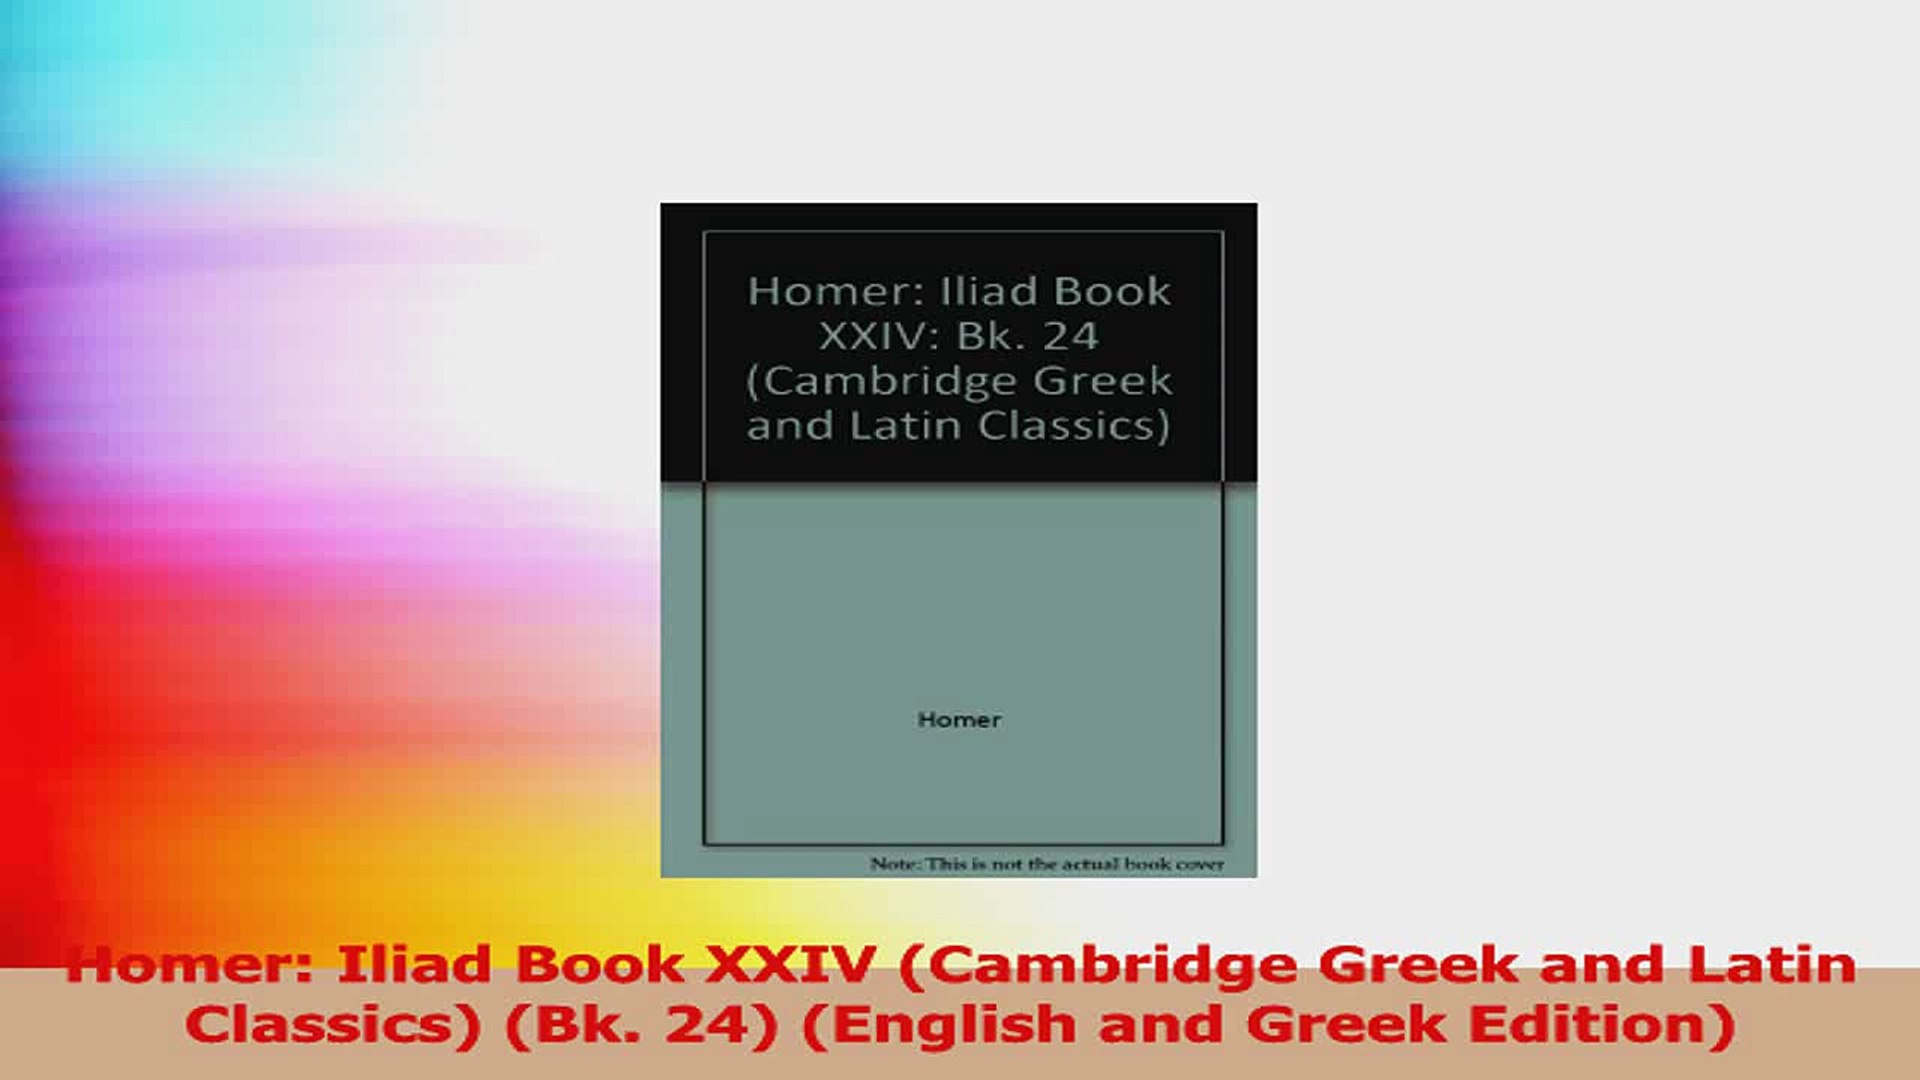 Homer: Iliad Book 22 (Cambridge Greek and Latin Classics)